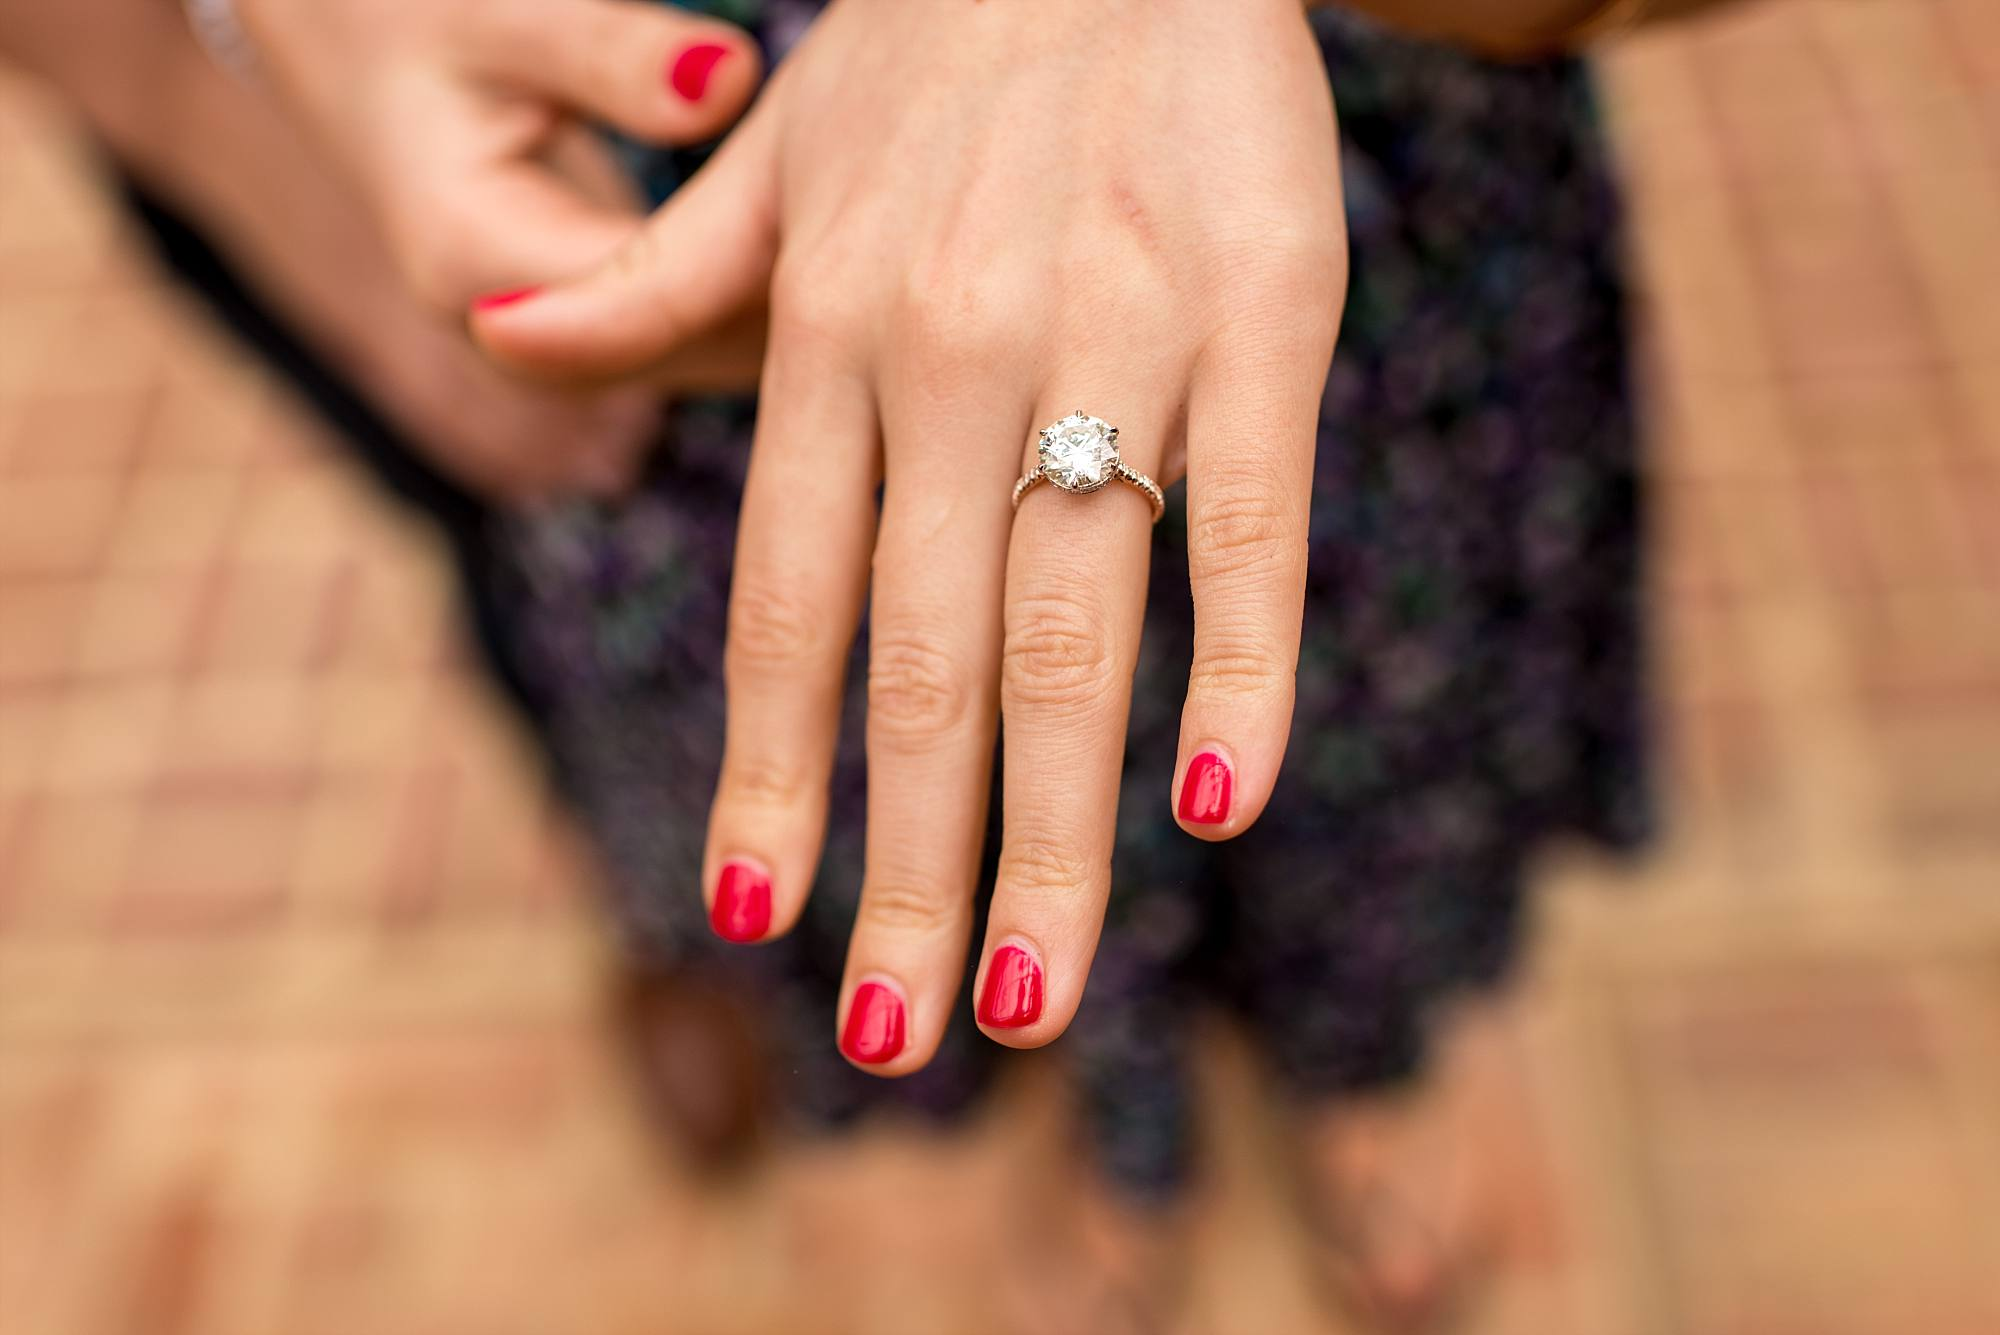 woman's hand with brand new engagement ring